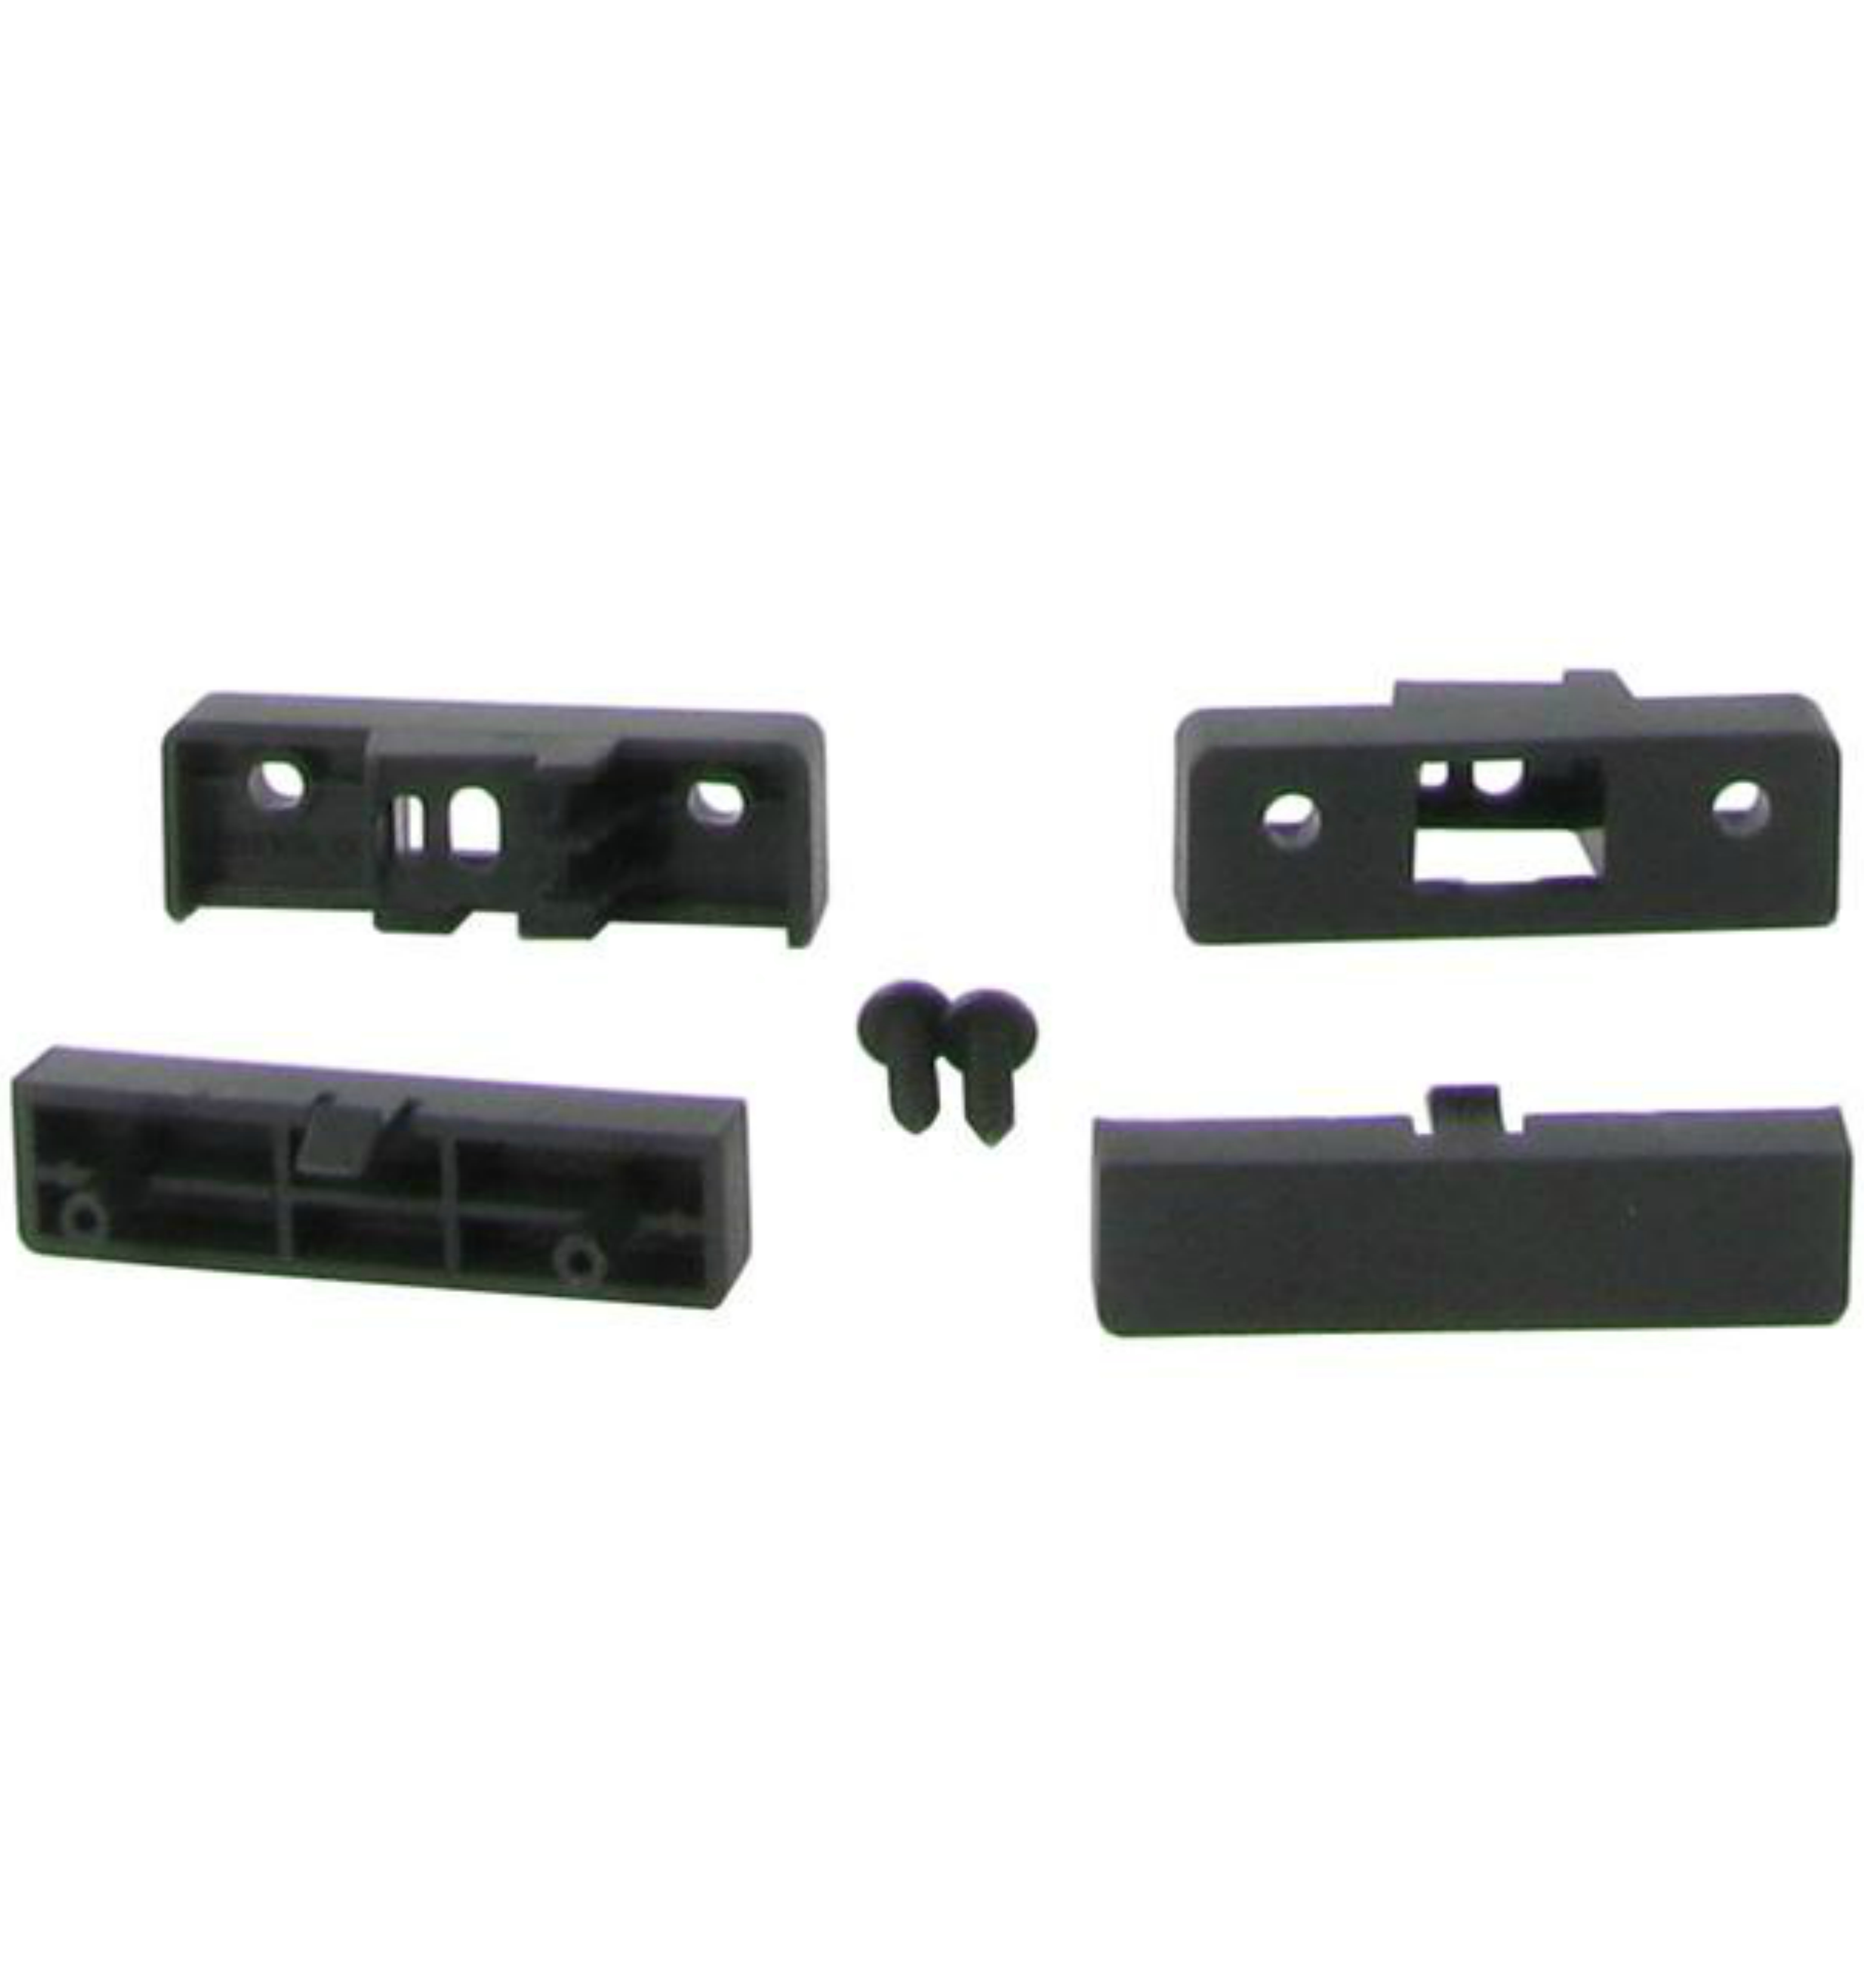 NEW C2 24AU08 Car Stereo Single DIN Replacement Fascia Plate  For Audi A3